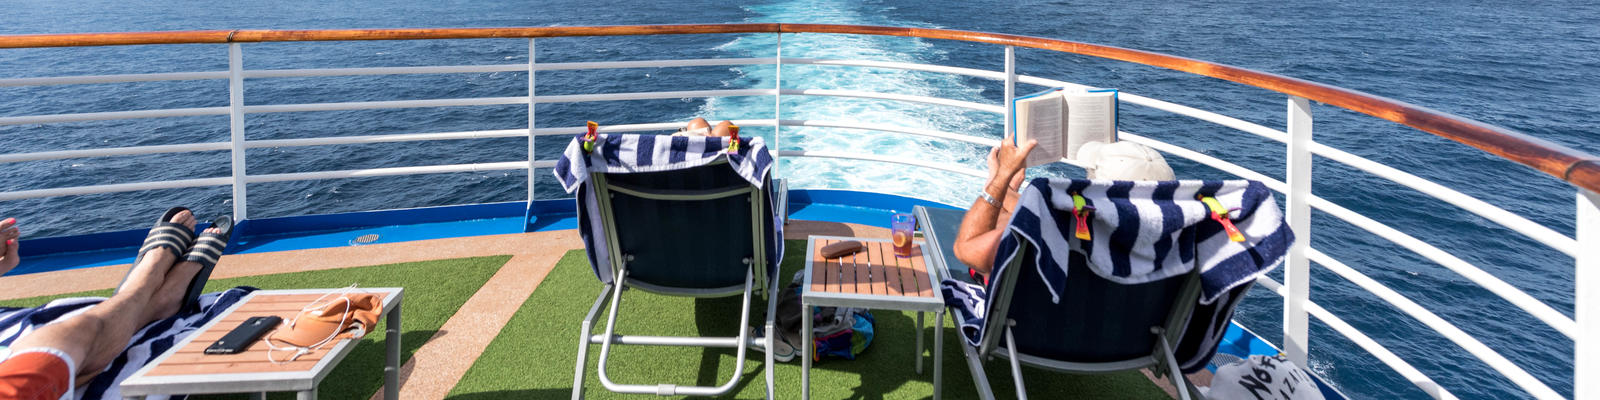 Cruise passengers on Emerald Princess (Photo: Cruise Critic)